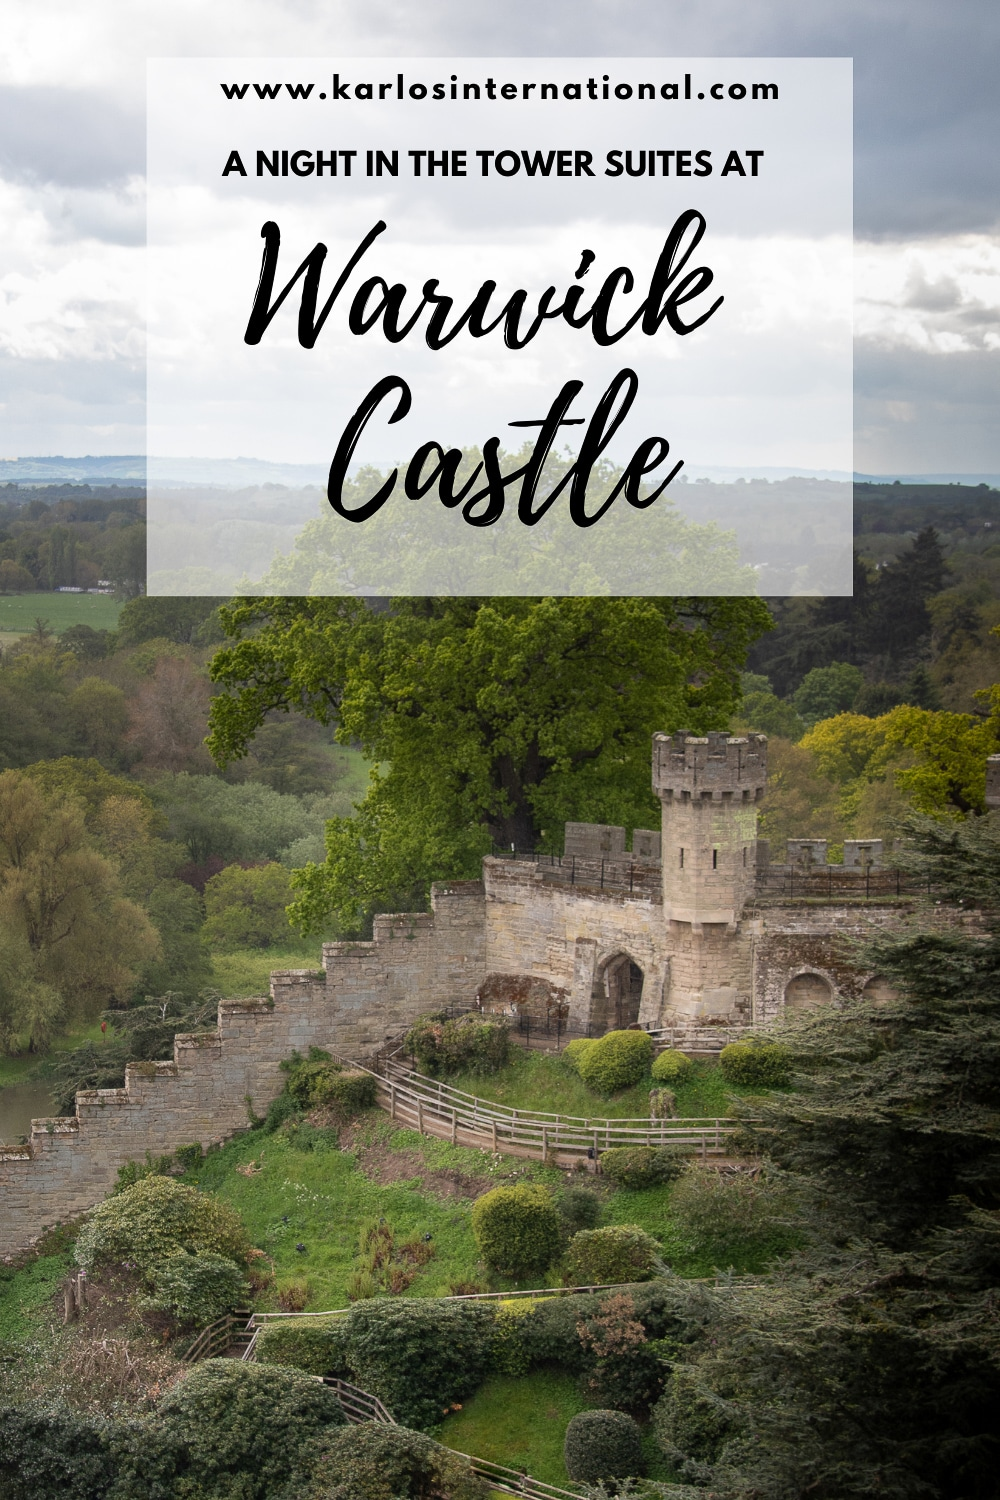 A nightin the Tower Suites at Warwick Castle - Pinterest Pin